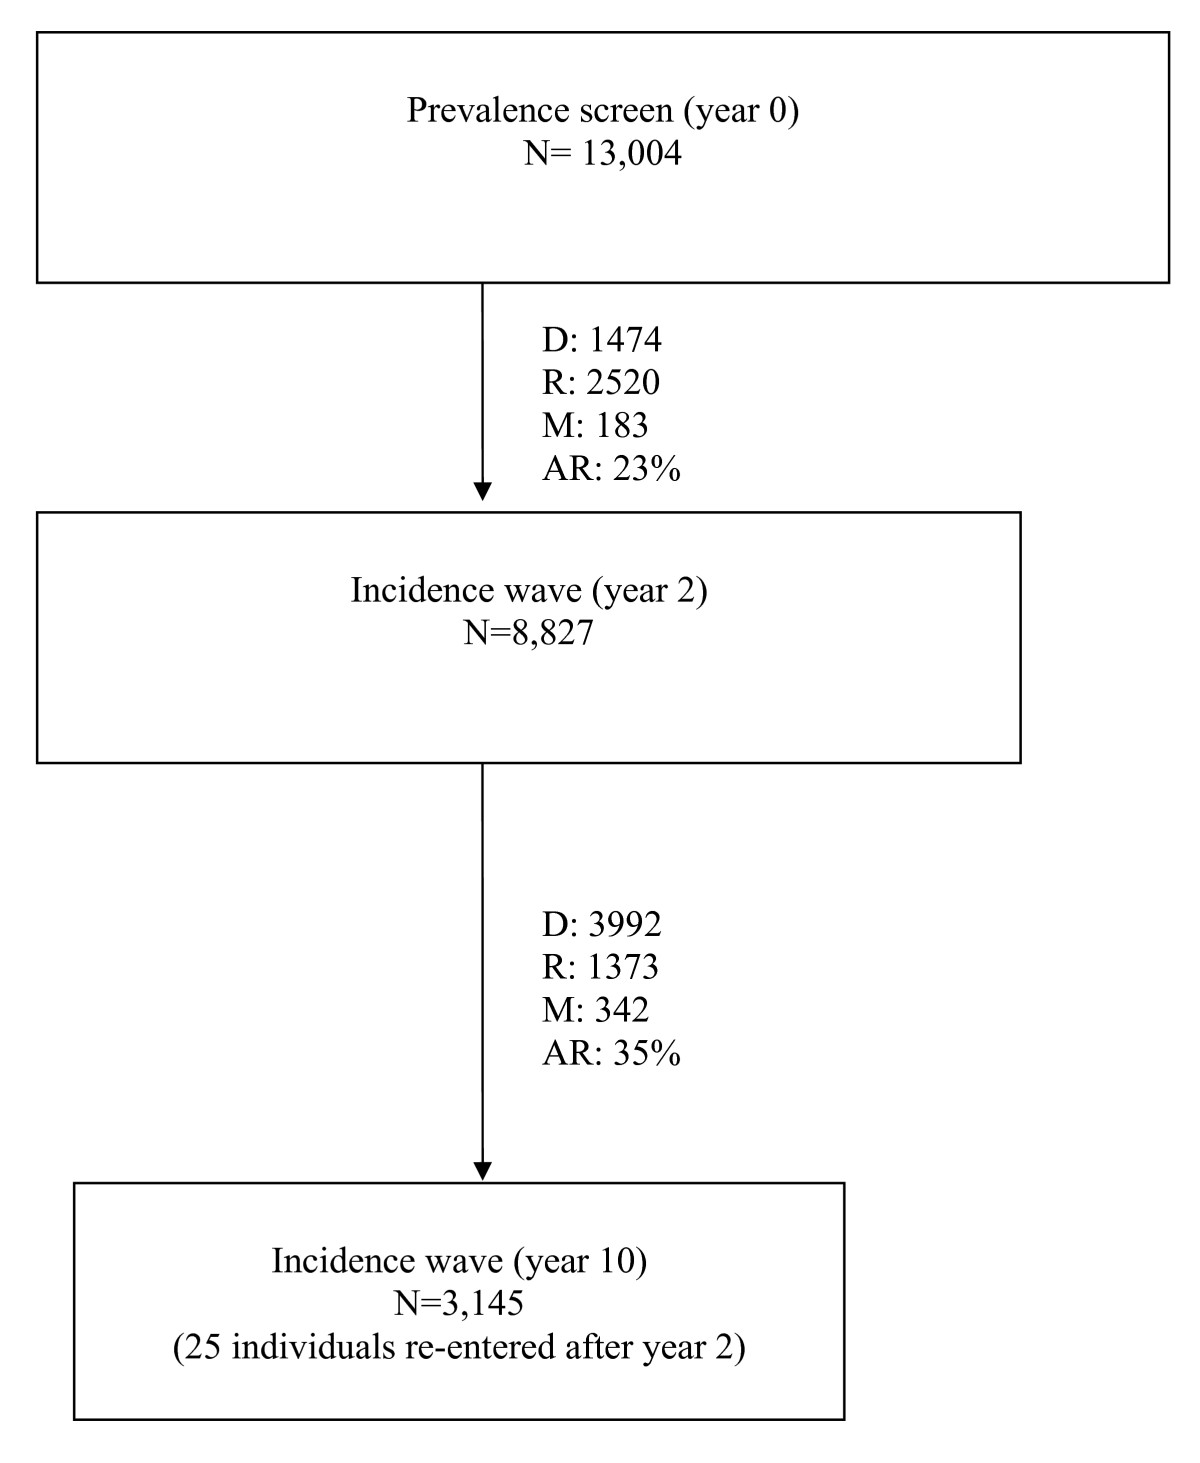 http://static-content.springer.com/image/art%3A10.1186%2F1471-2458-6-185/MediaObjects/12889_2006_Article_482_Fig2_HTML.jpg